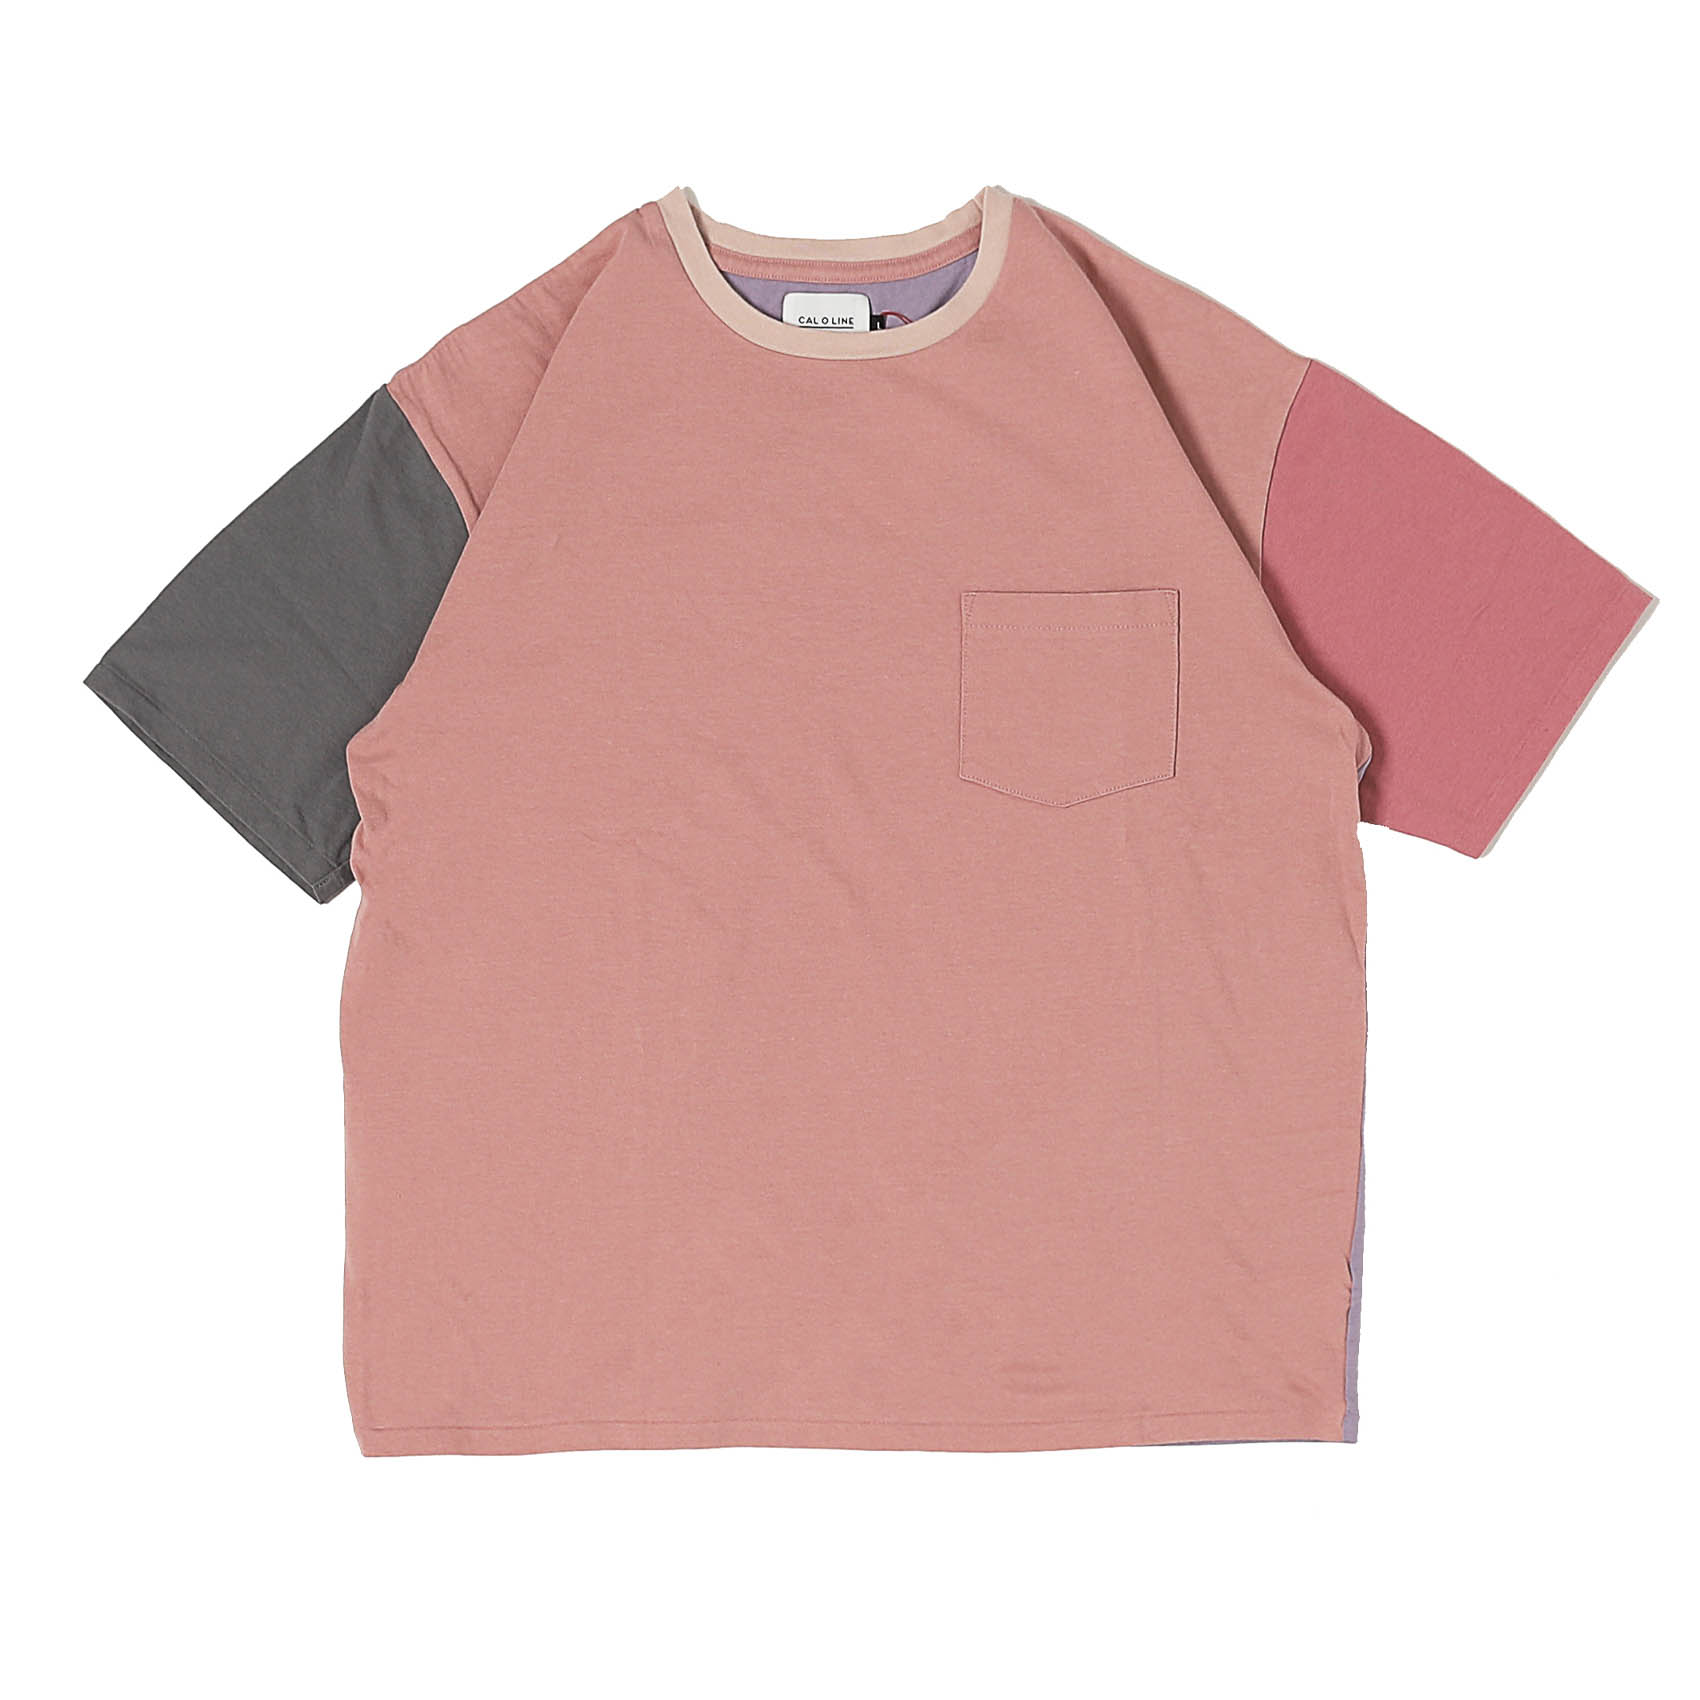 MULTICOLOR S/S TEE - PINK